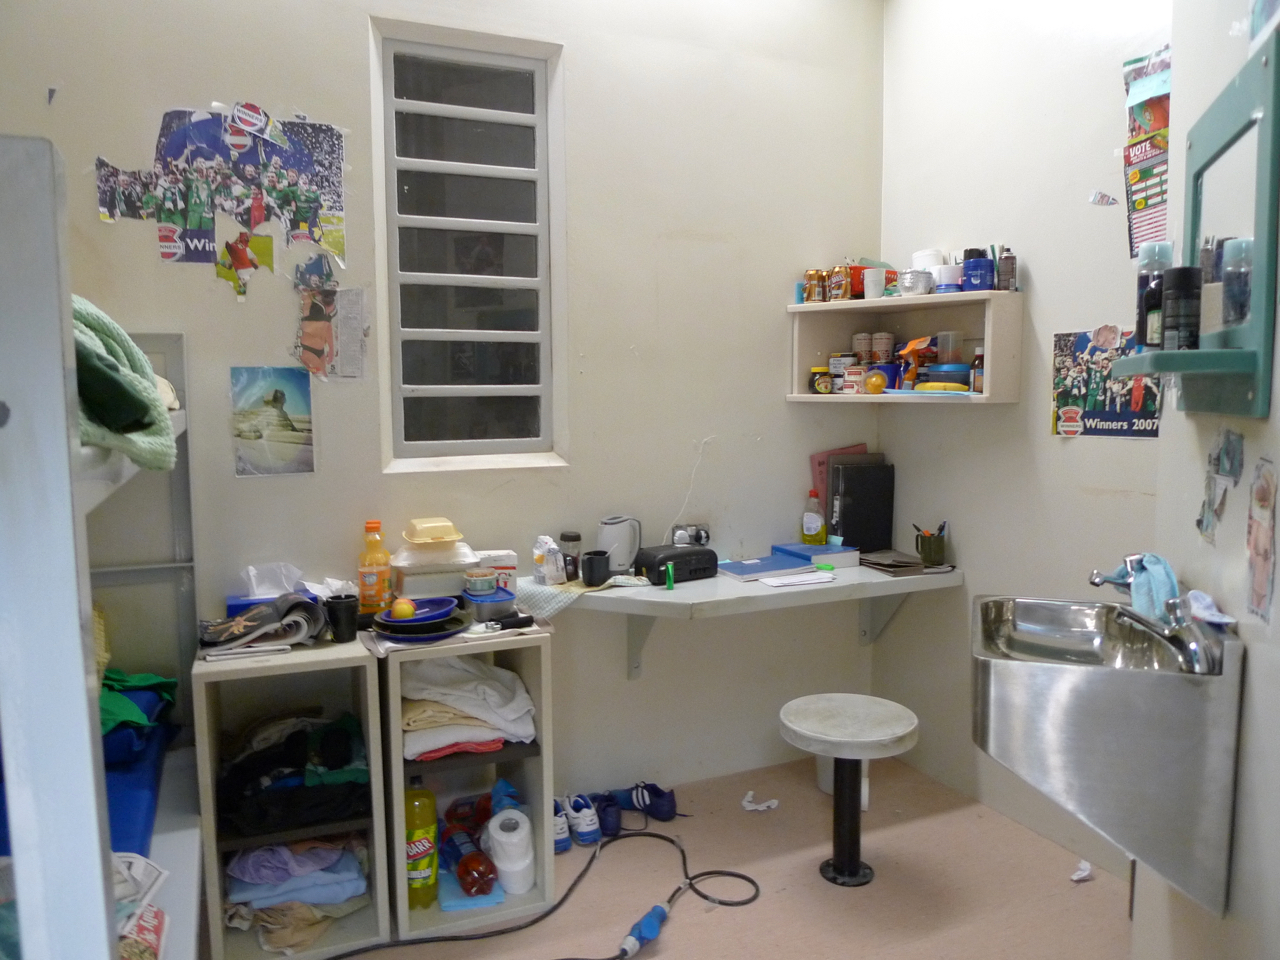 TS2_Prison Cell9_ASquires2016.jpg